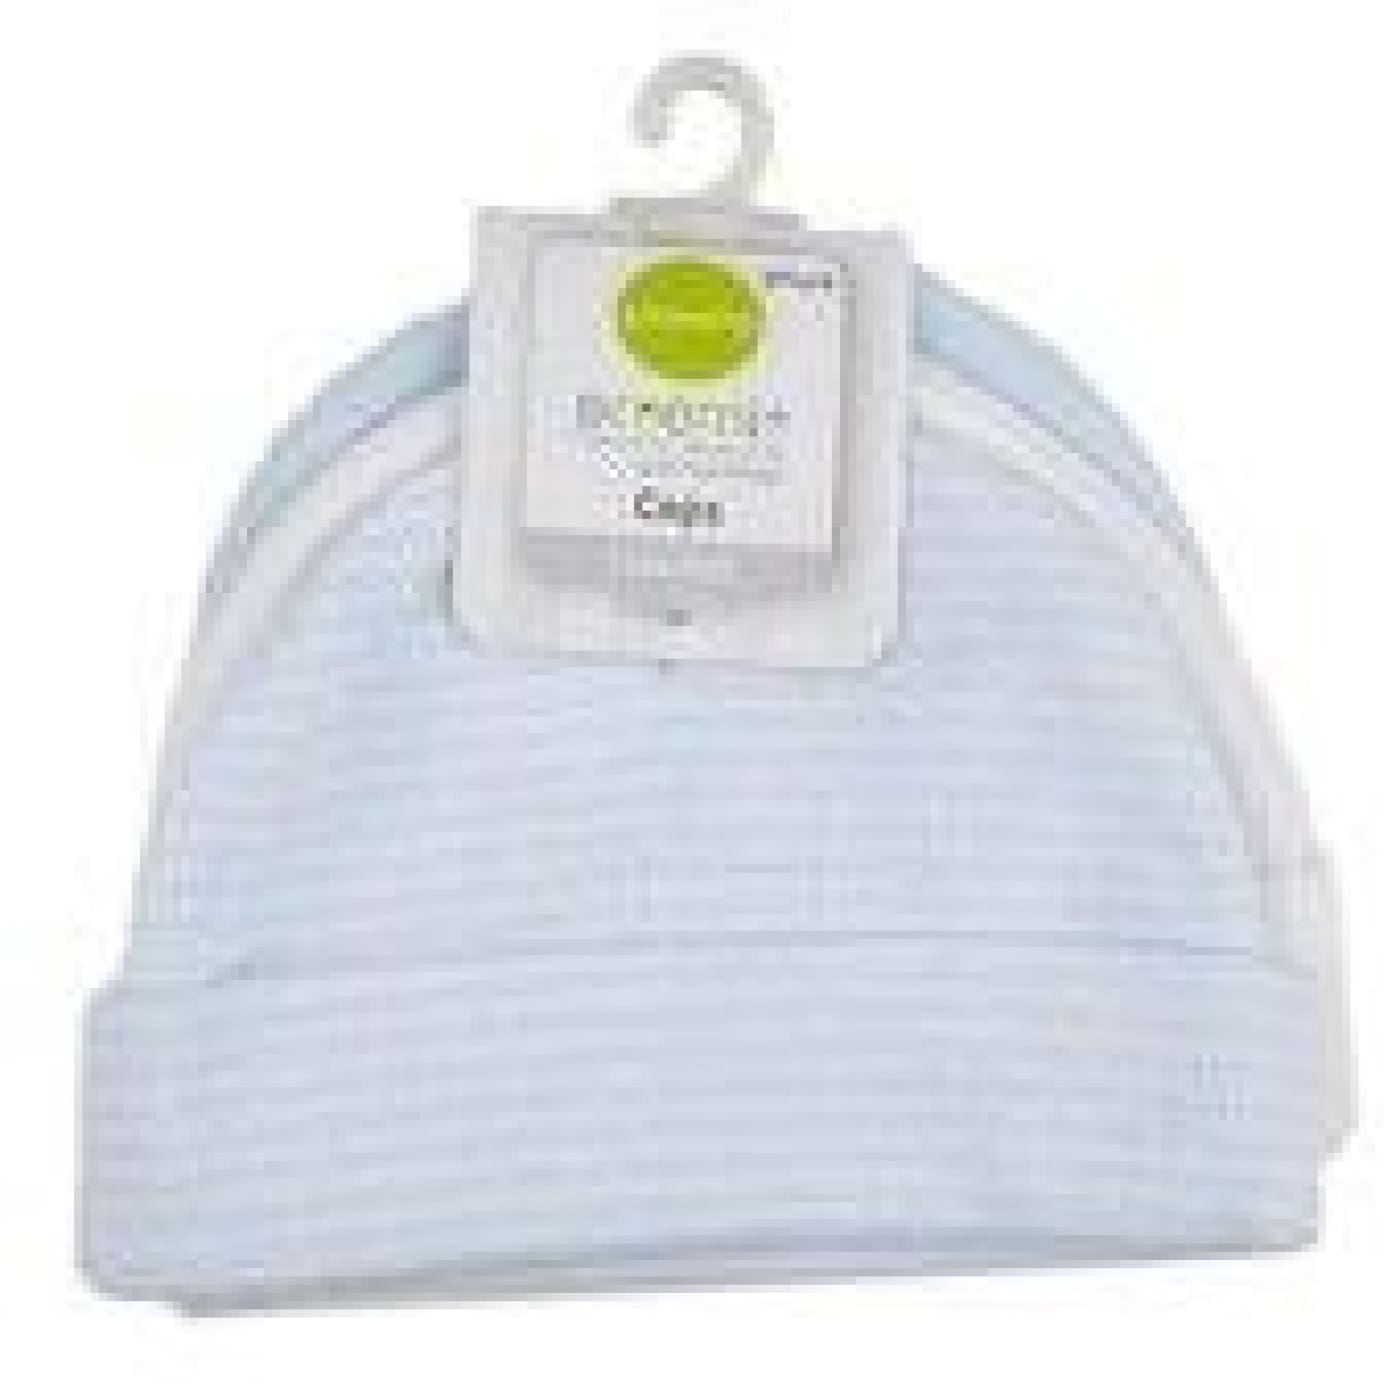 Playette Preemie Caps - Blue/White 3PK - Prem / Blue/White - BABY & TODDLER CLOTHING - BEANIES/HATS